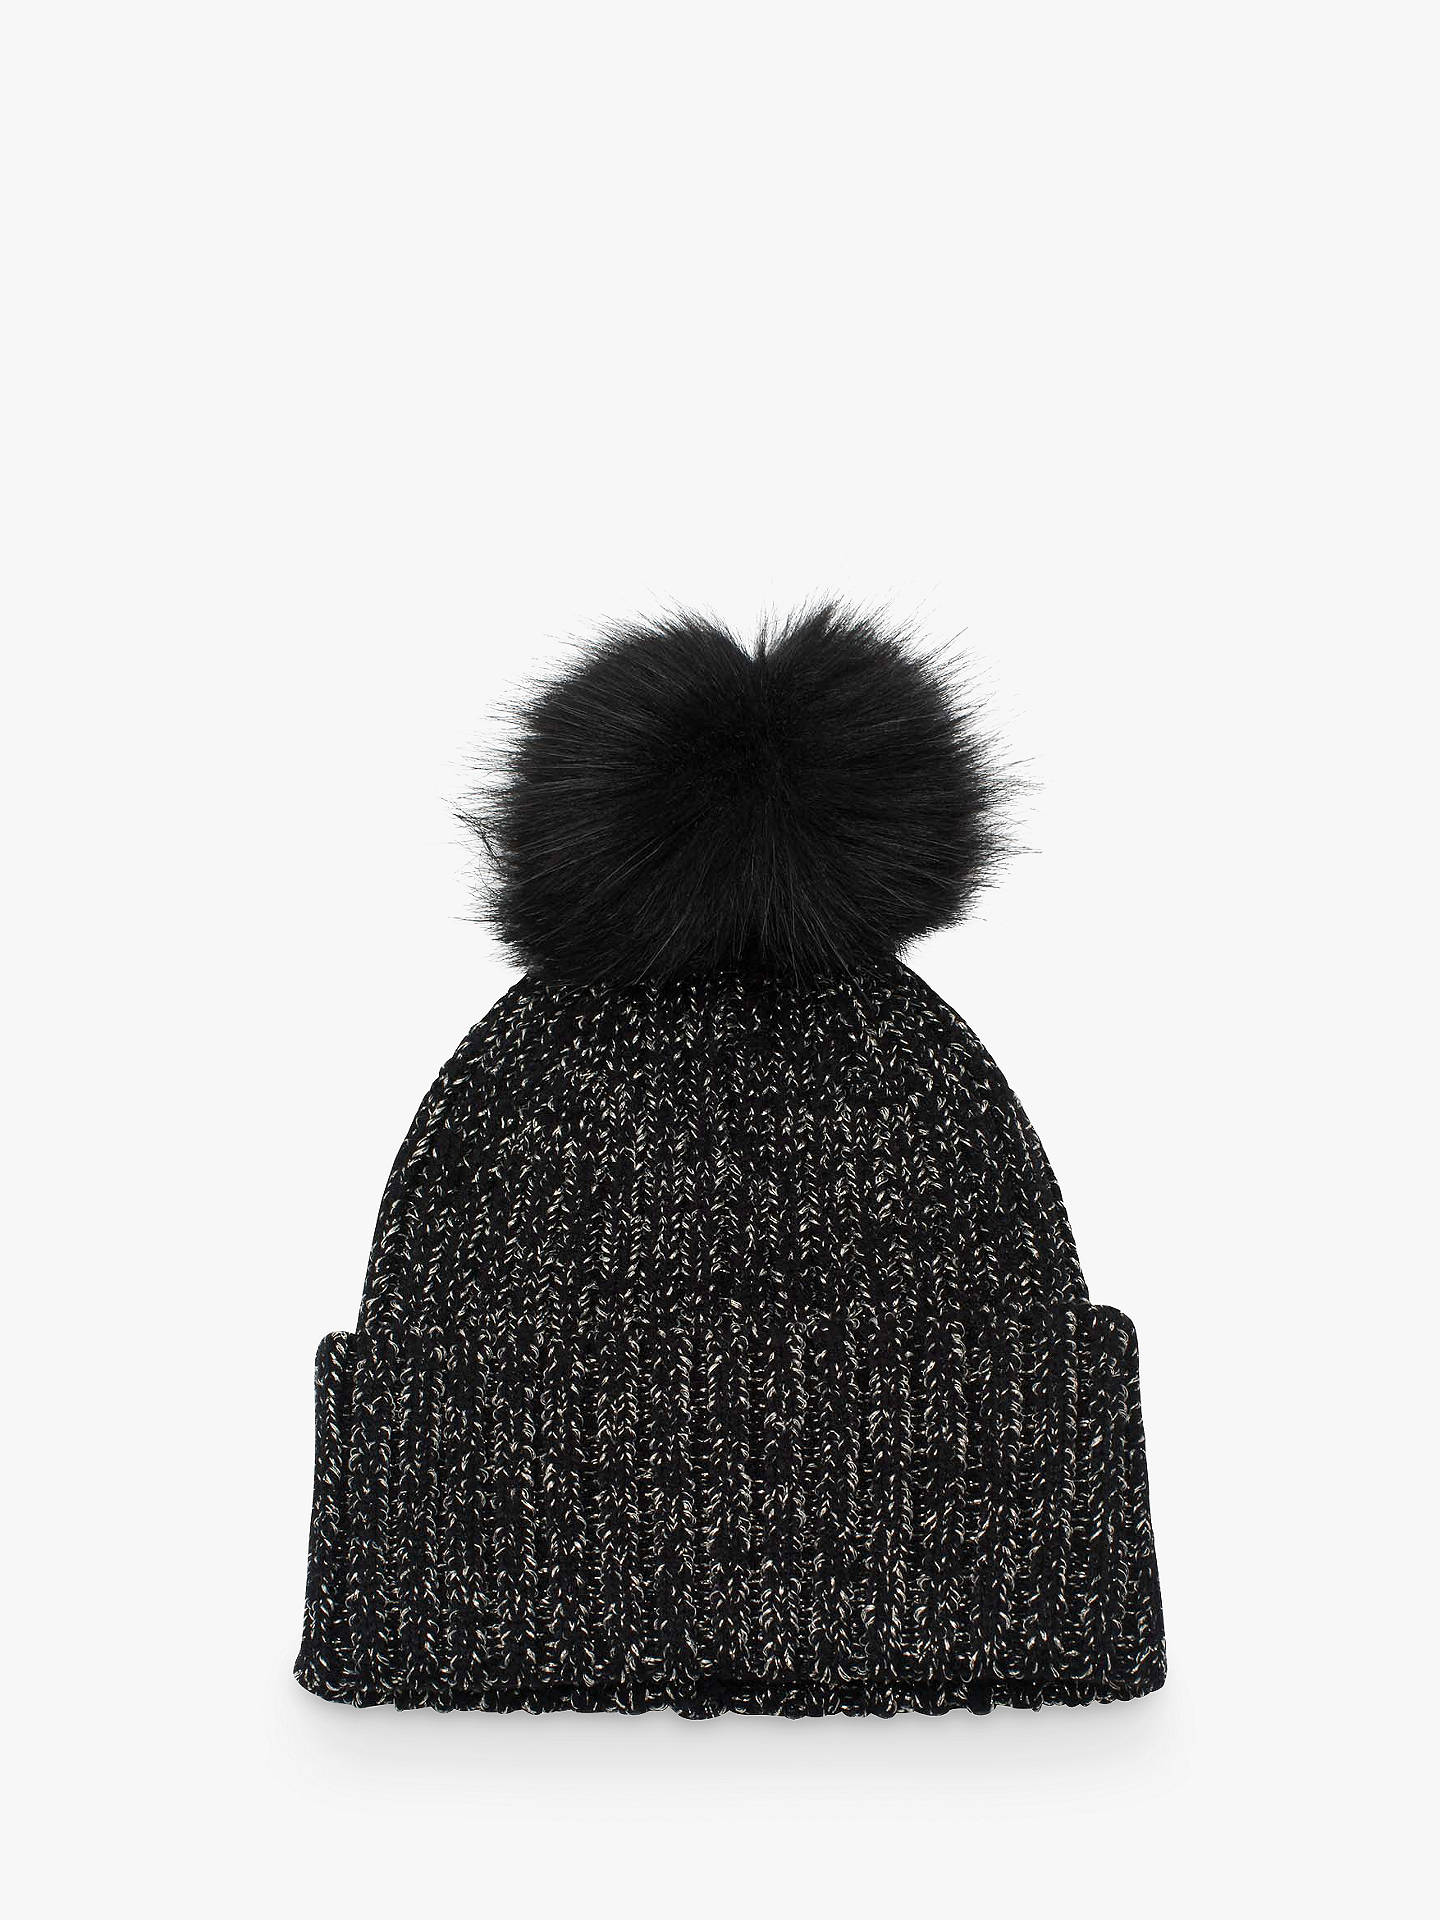 893ab83a608 BuyFrench Connection Turn Bobble Beanie Hat